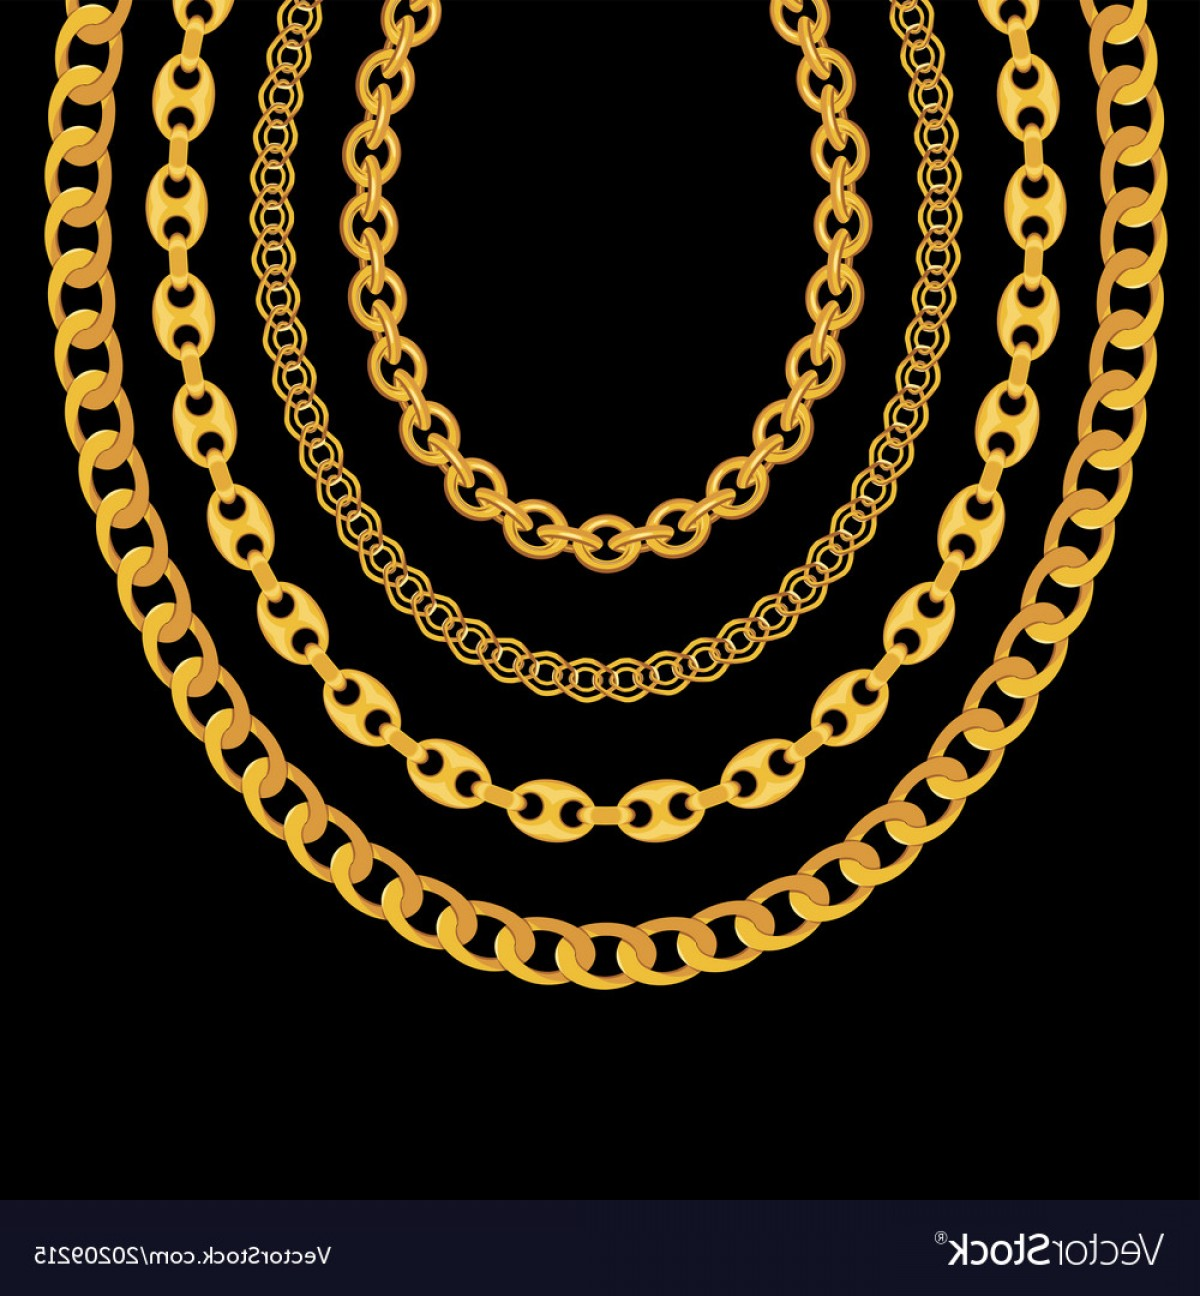 Necklace Vector Chain Grapicts: Gold Chain Jewelry On Black Background Vector